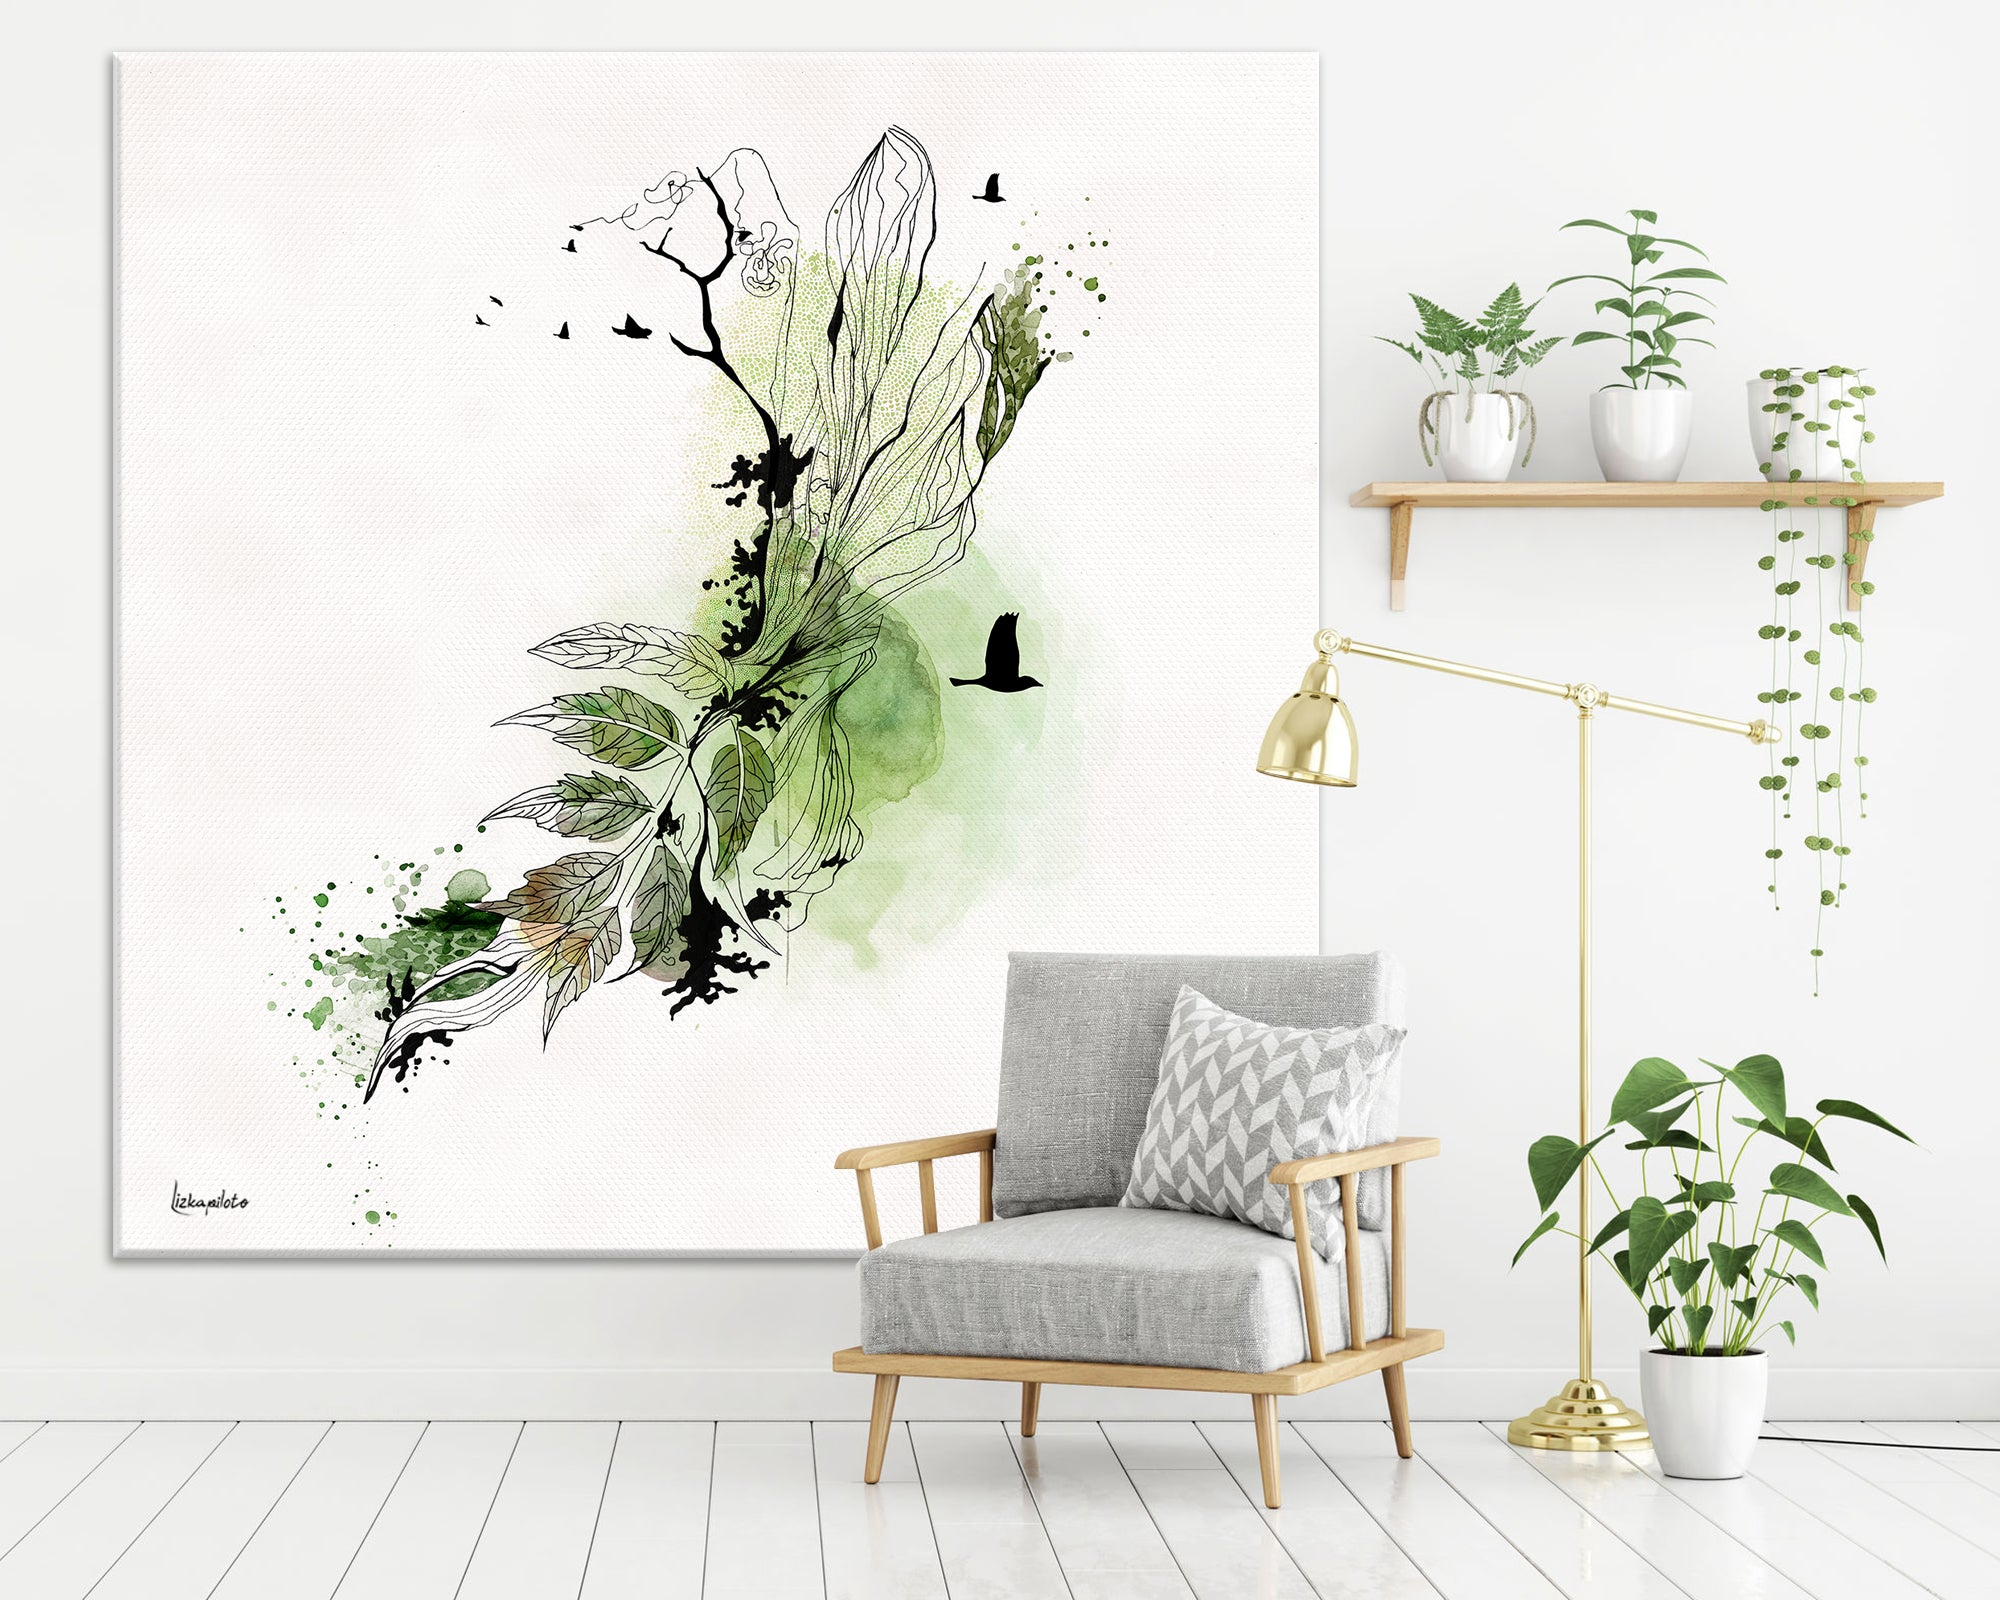 Green abstract painting on a large canvas, hanged on a white space